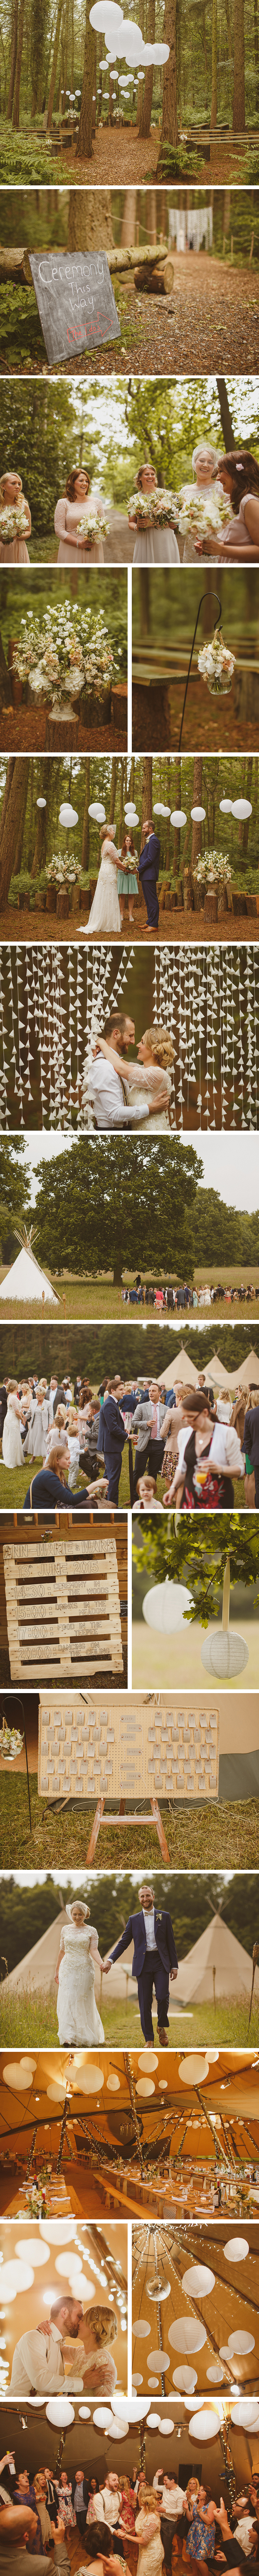 Ann-Marie & Mark PapaKata Teepee Wedding at Camp Katur, North Yorkshire